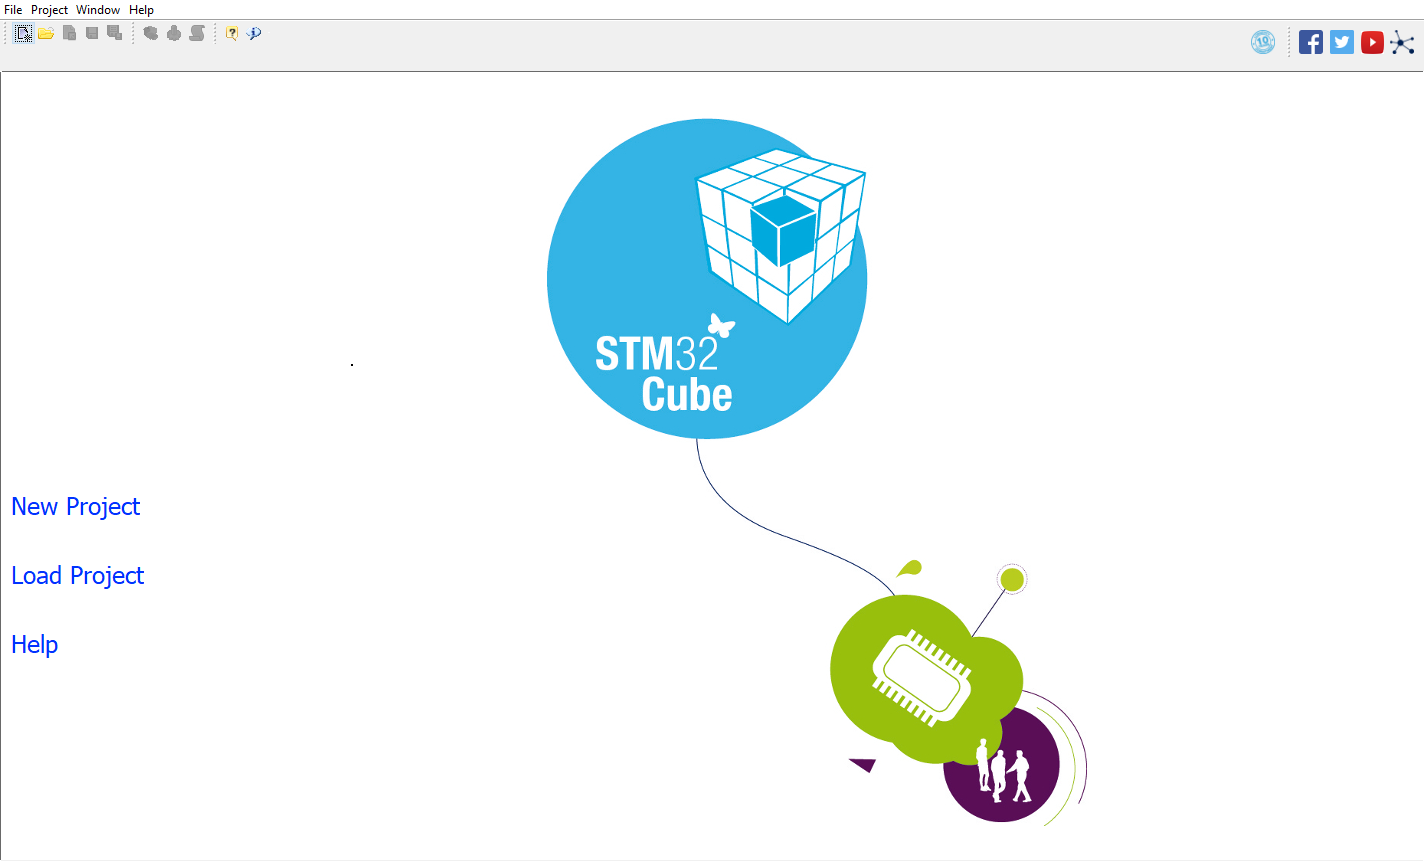 STM32CubeMX launched